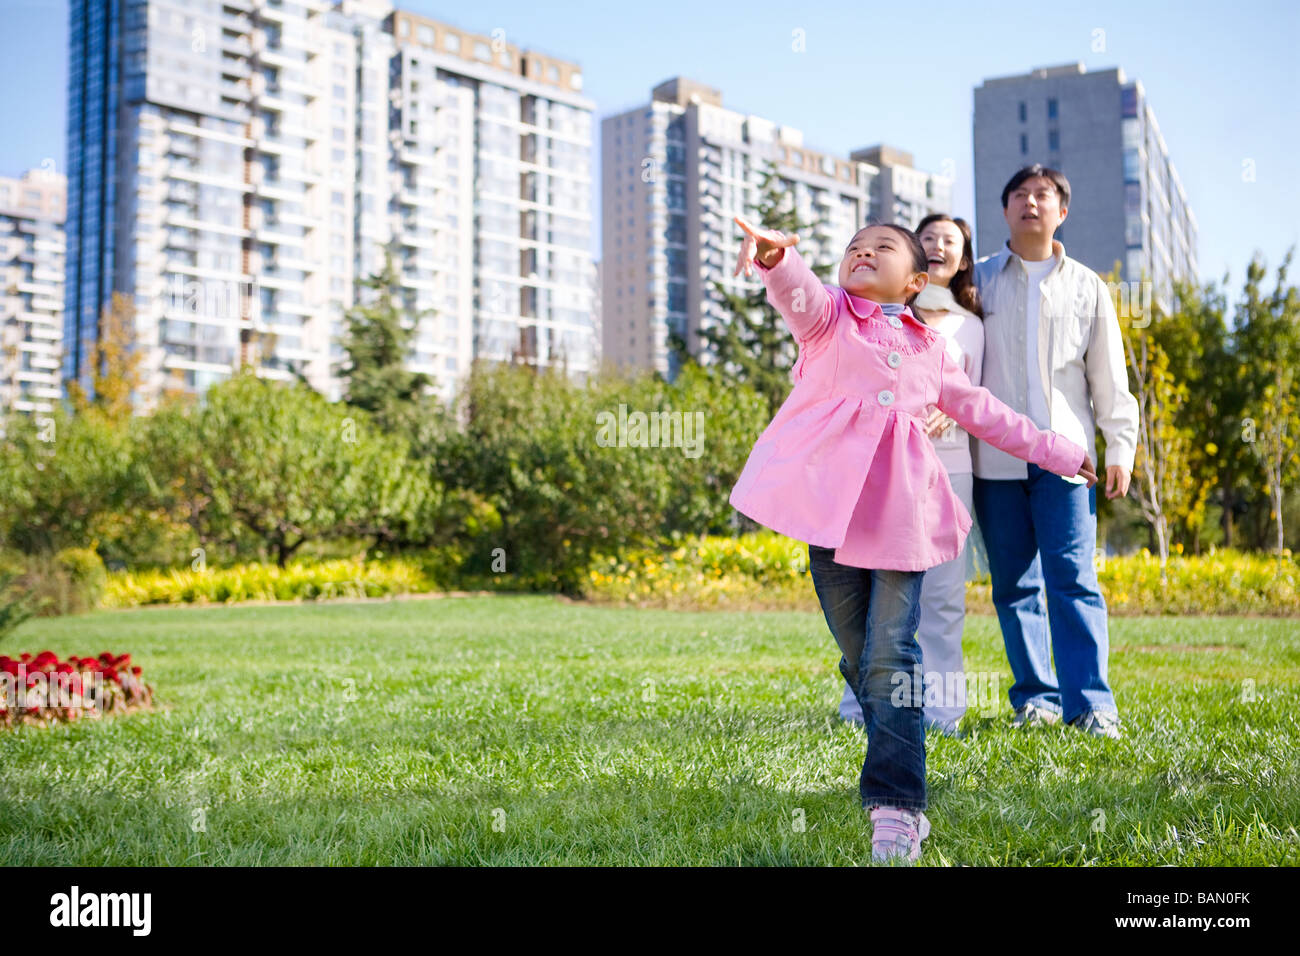 A young girl throws a paper airplane, while her parents look on - Stock Image